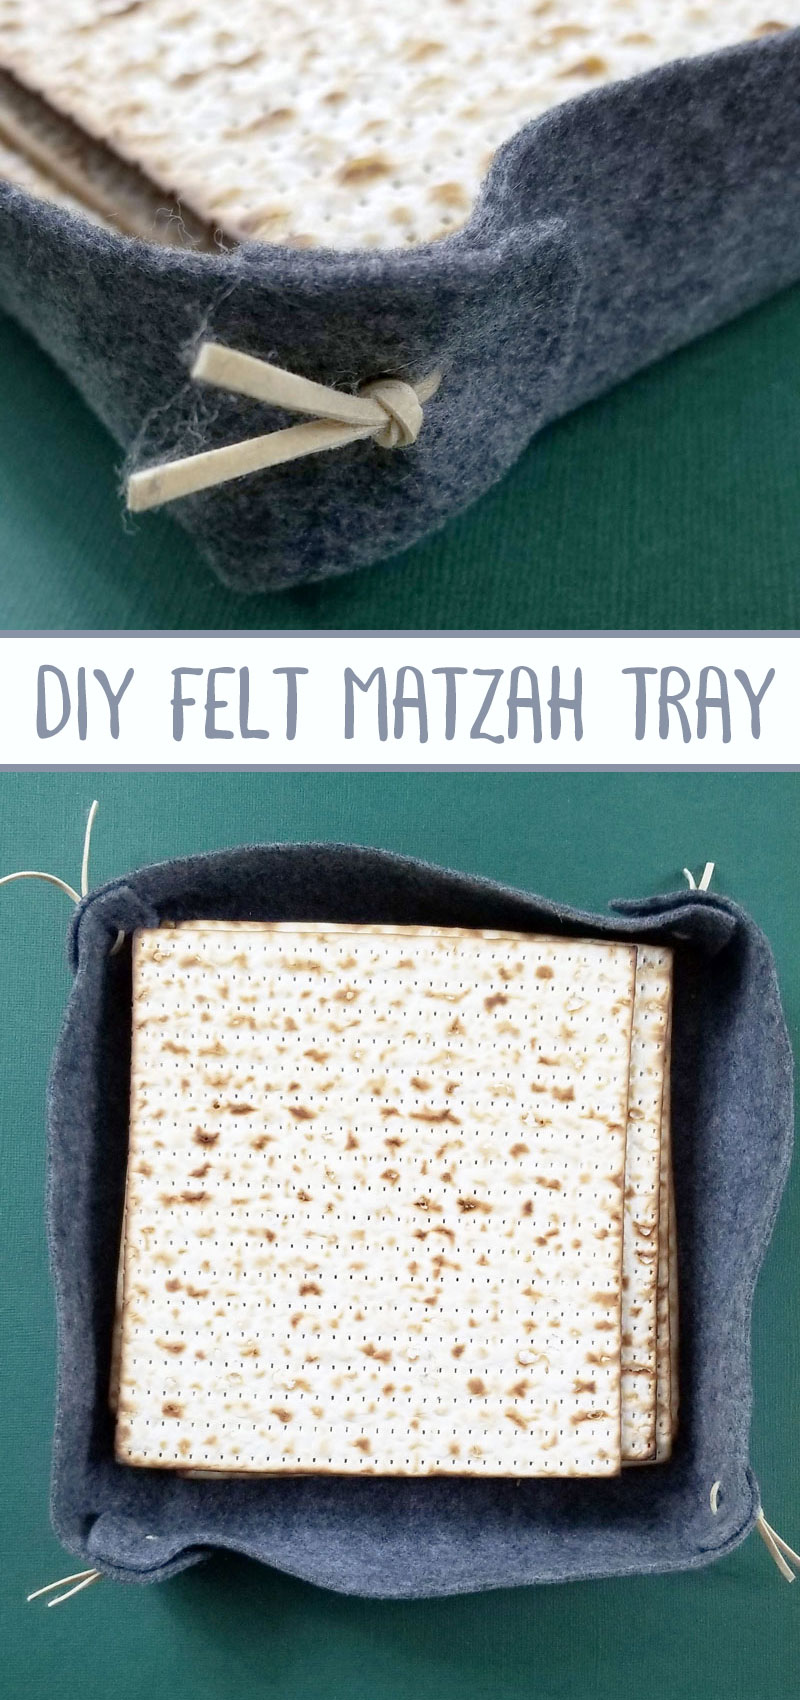 Make your own matzah tray or plate for the passover seder! One of my favorite DIY Pesach seder table decorations and ideas